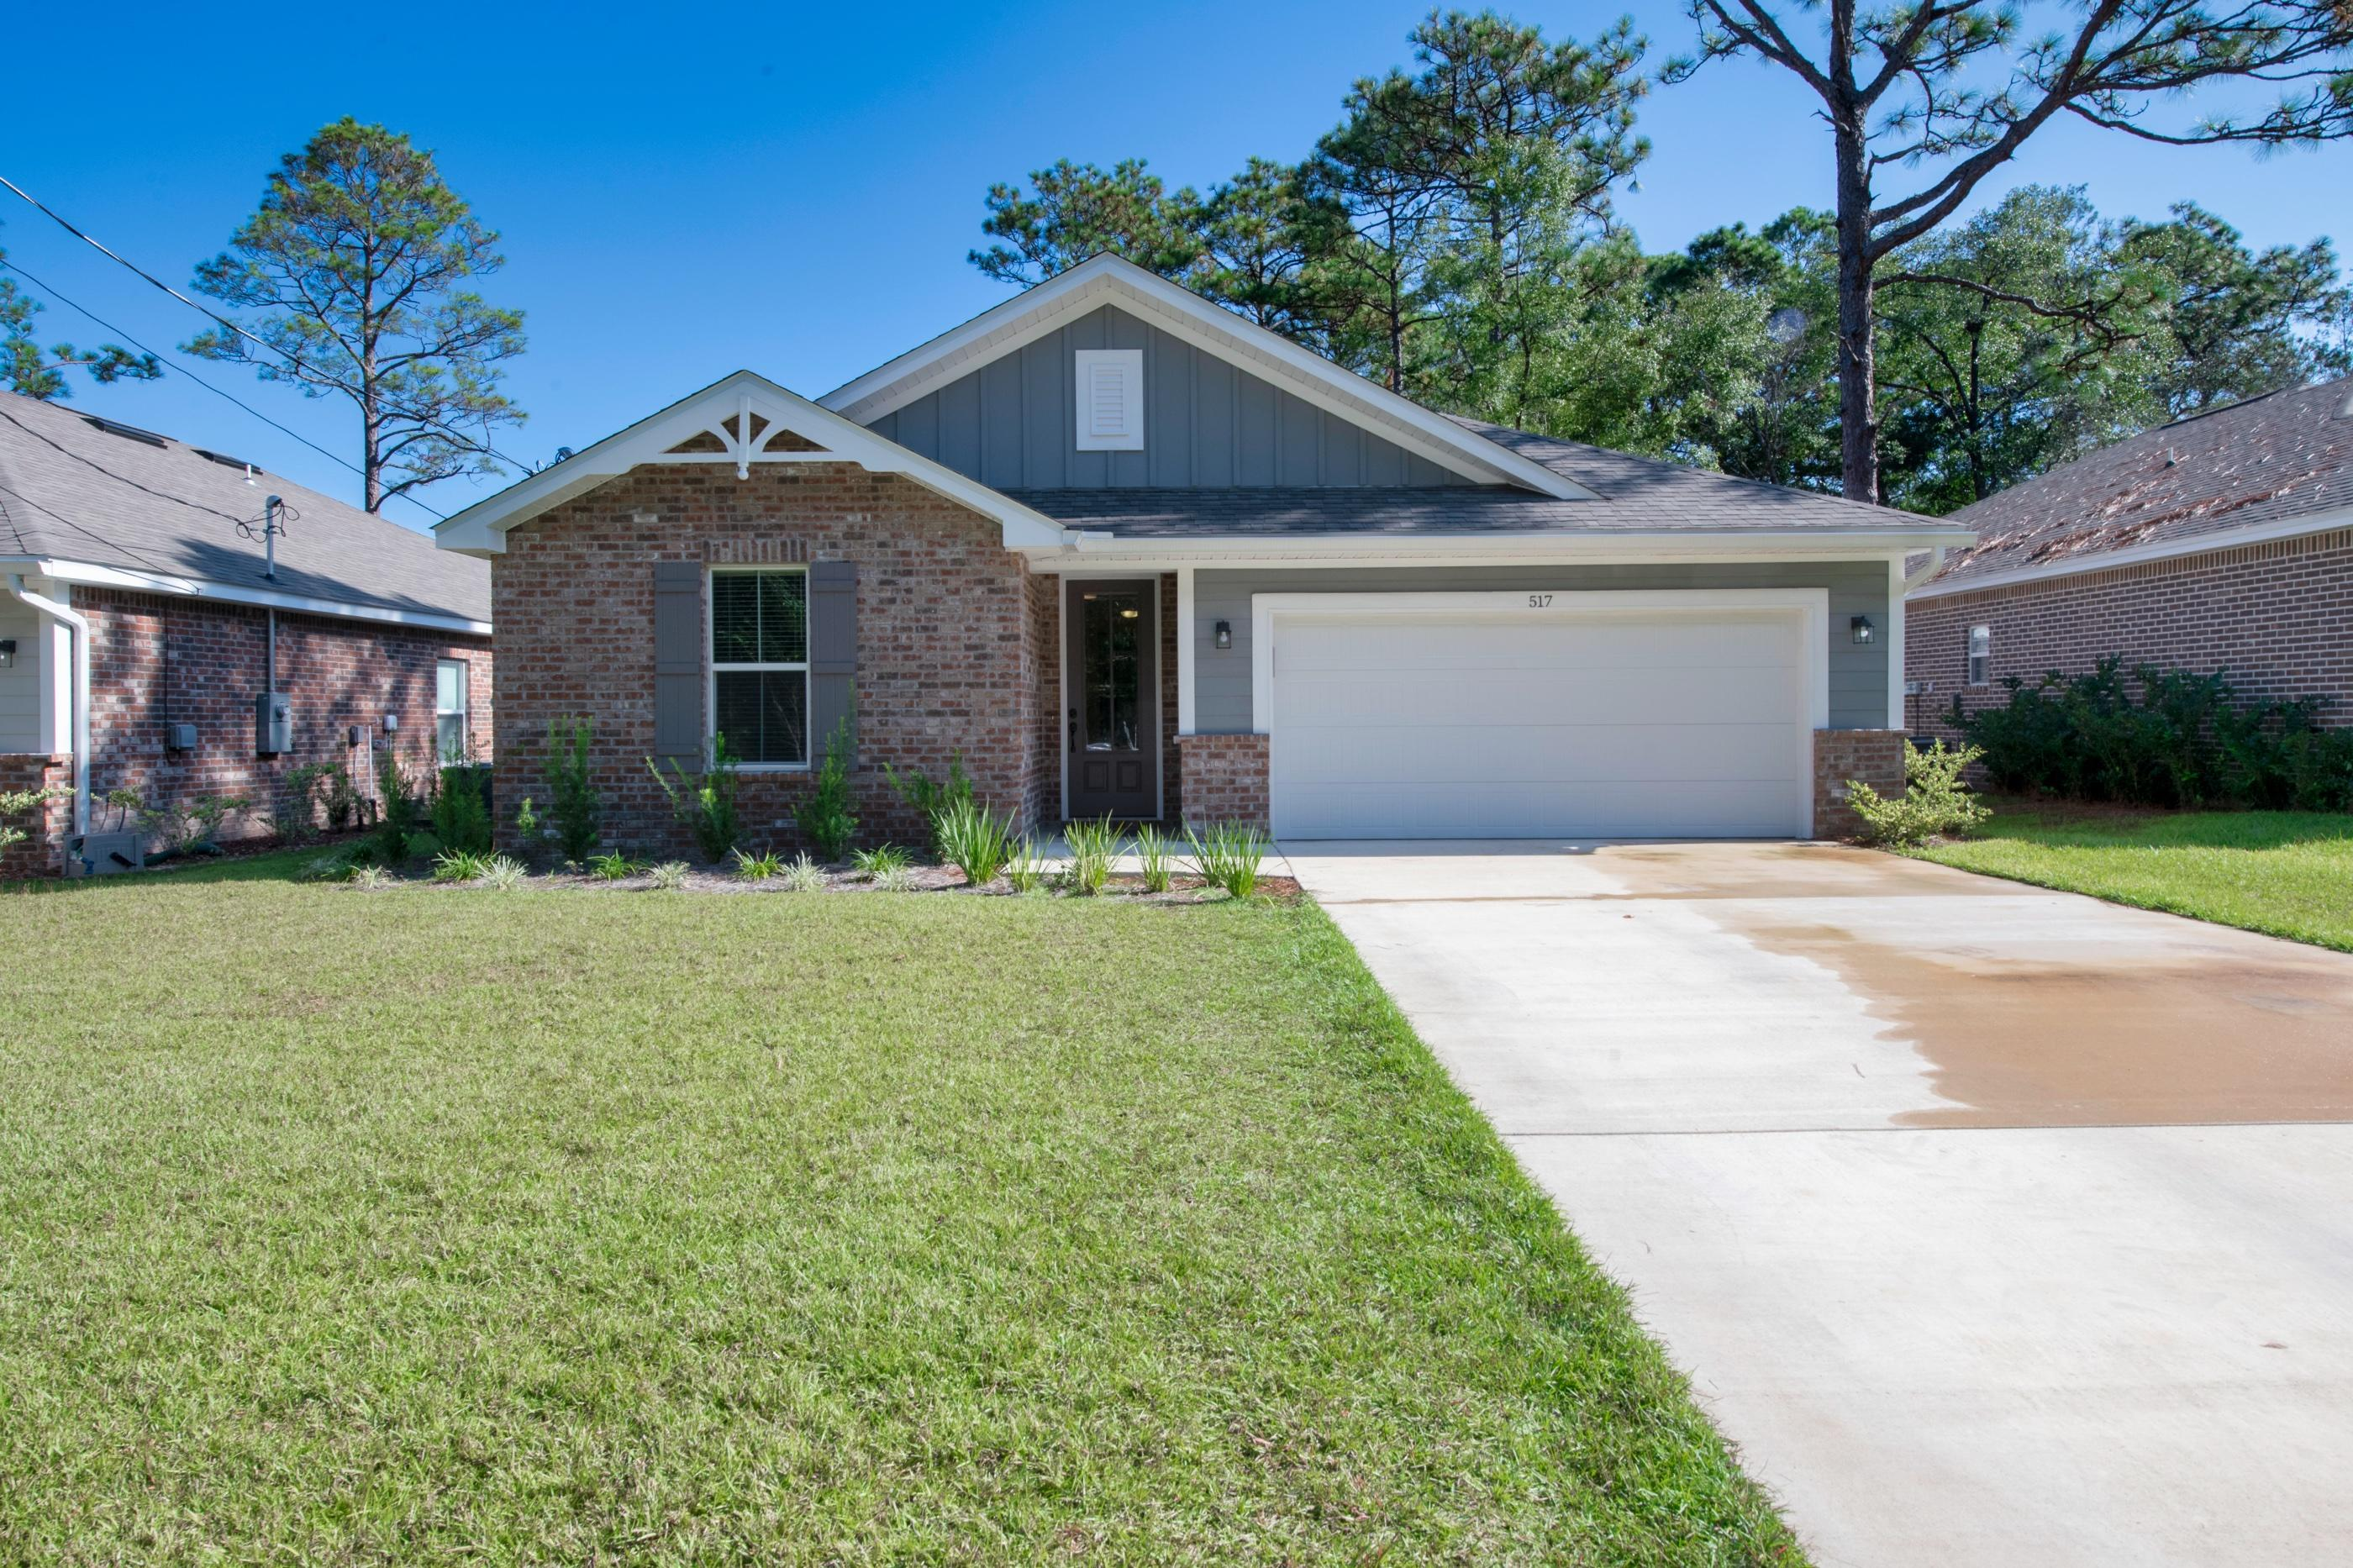 Photo of home for sale at 517 Johnson, Valparaiso FL